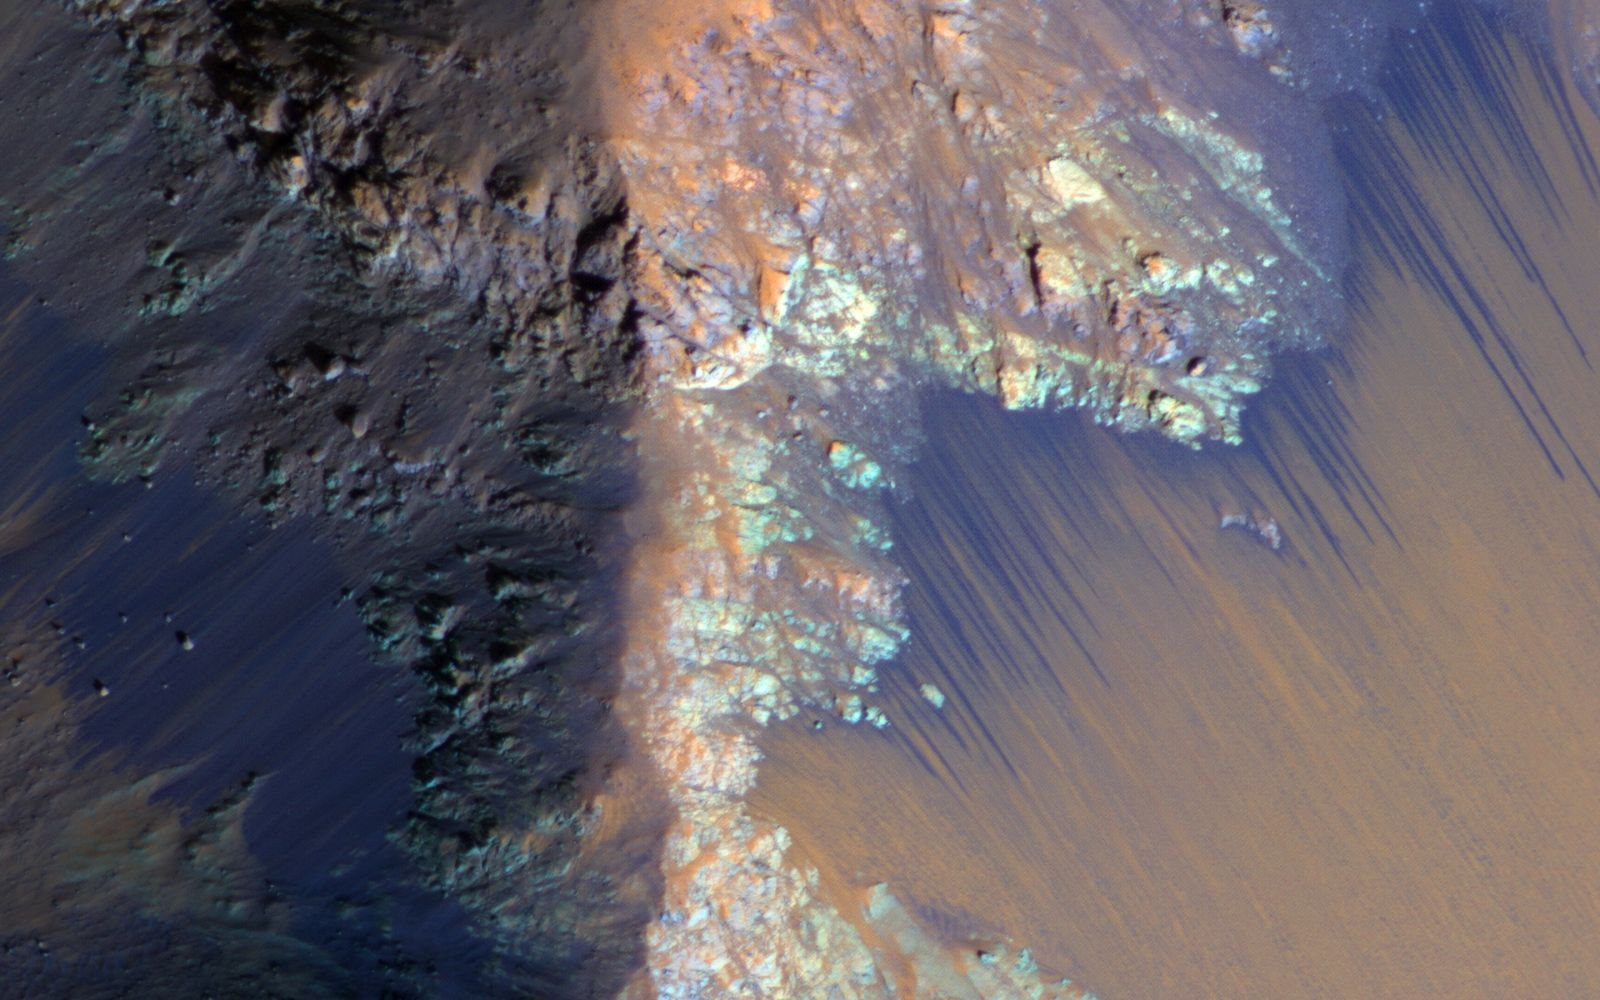 Recurring slope linea, or RSL, in an image captured by the HiRISE camera on the Mars Reconaissance Orbiter. (Image: NASA)